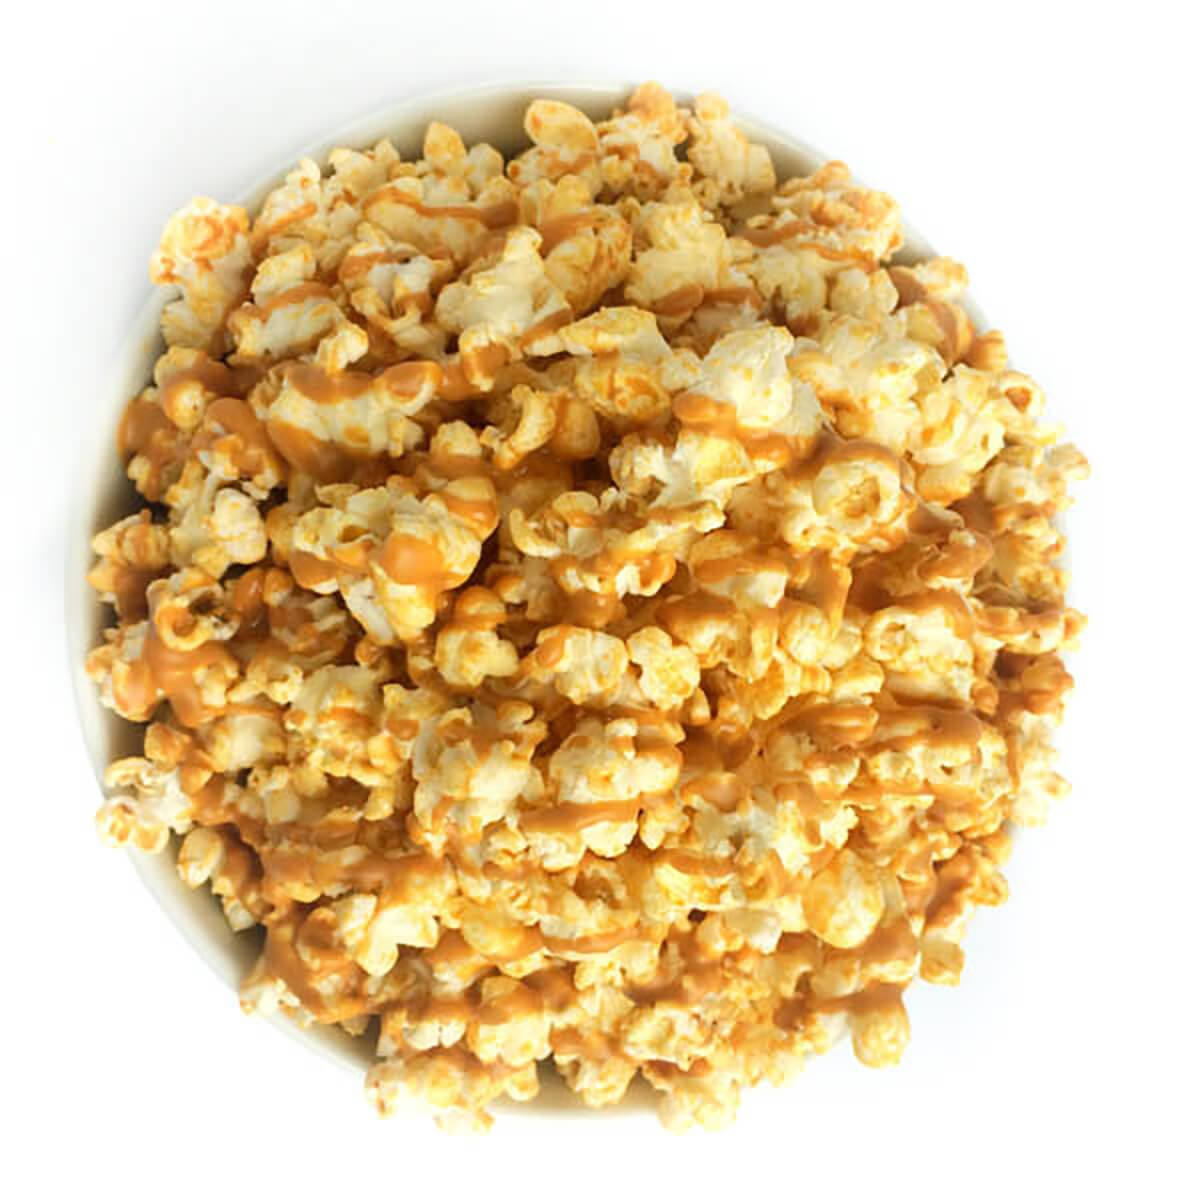 Peanut Butter Smothered Popcorn